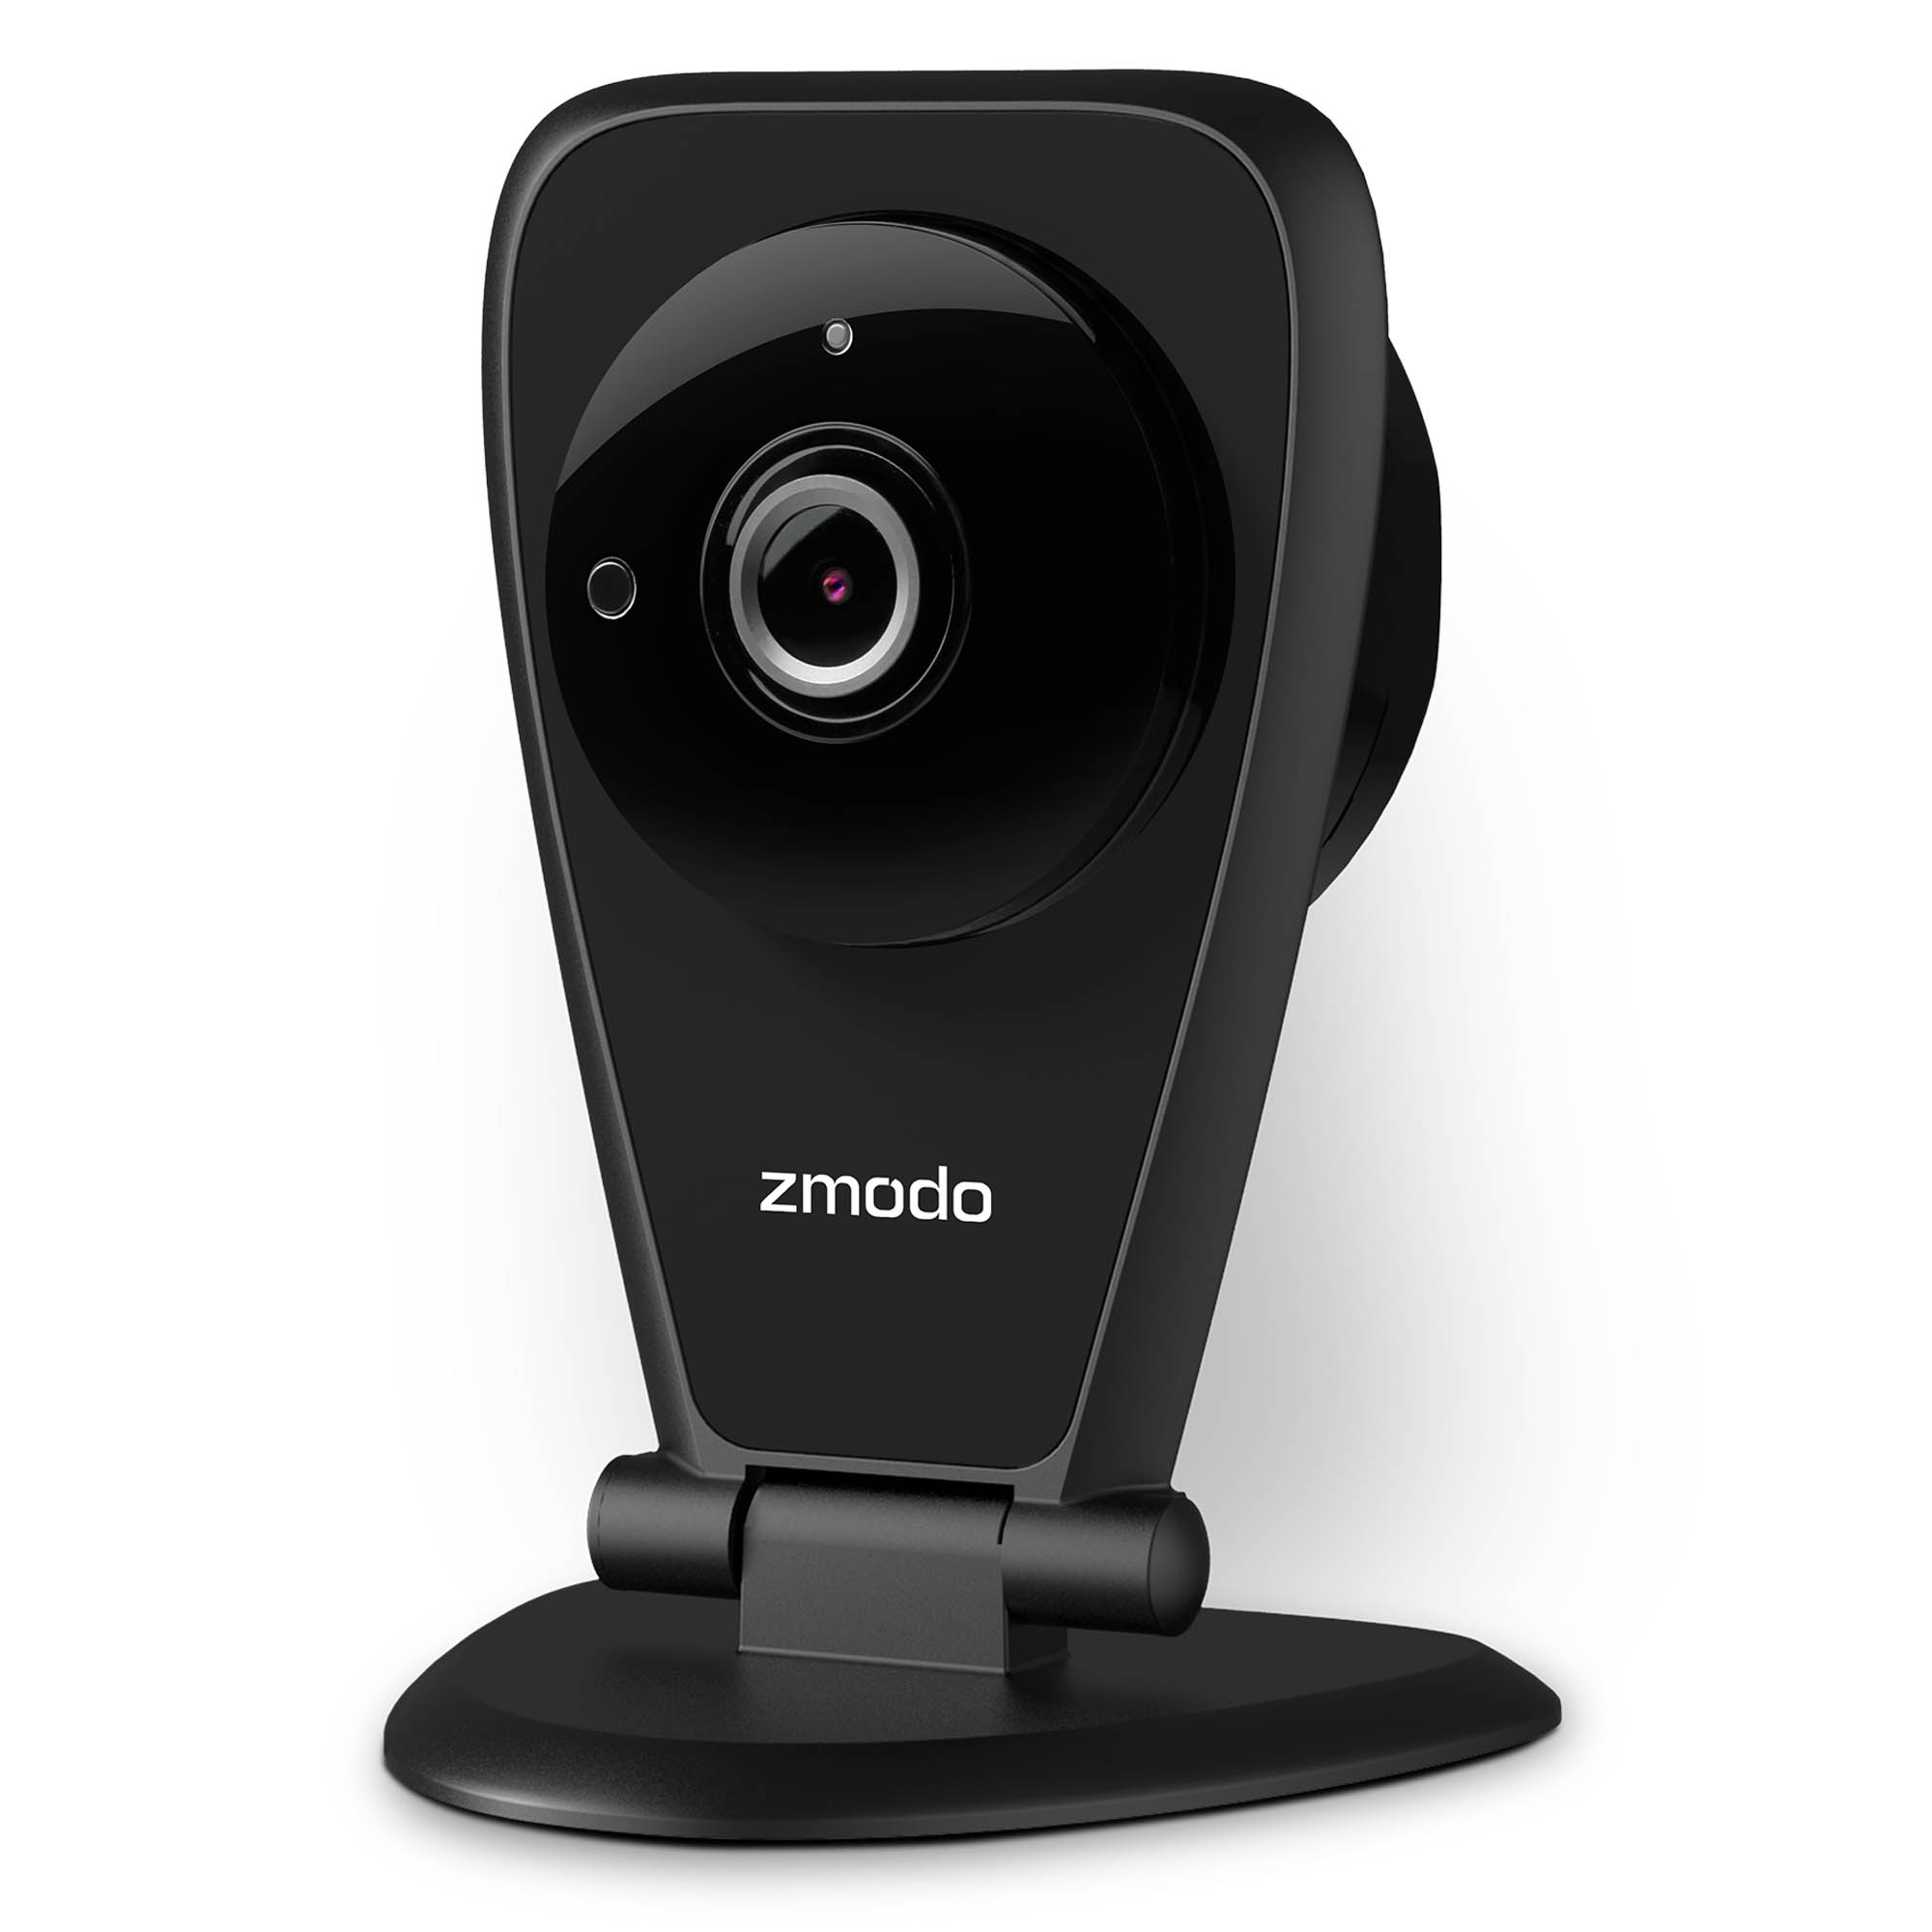 Zmodo EZCam Pro 1080p HD Wireless Kid and Pet Monitoring Security Camera with Night Vision, Two Way Audio, and... by Zmodo